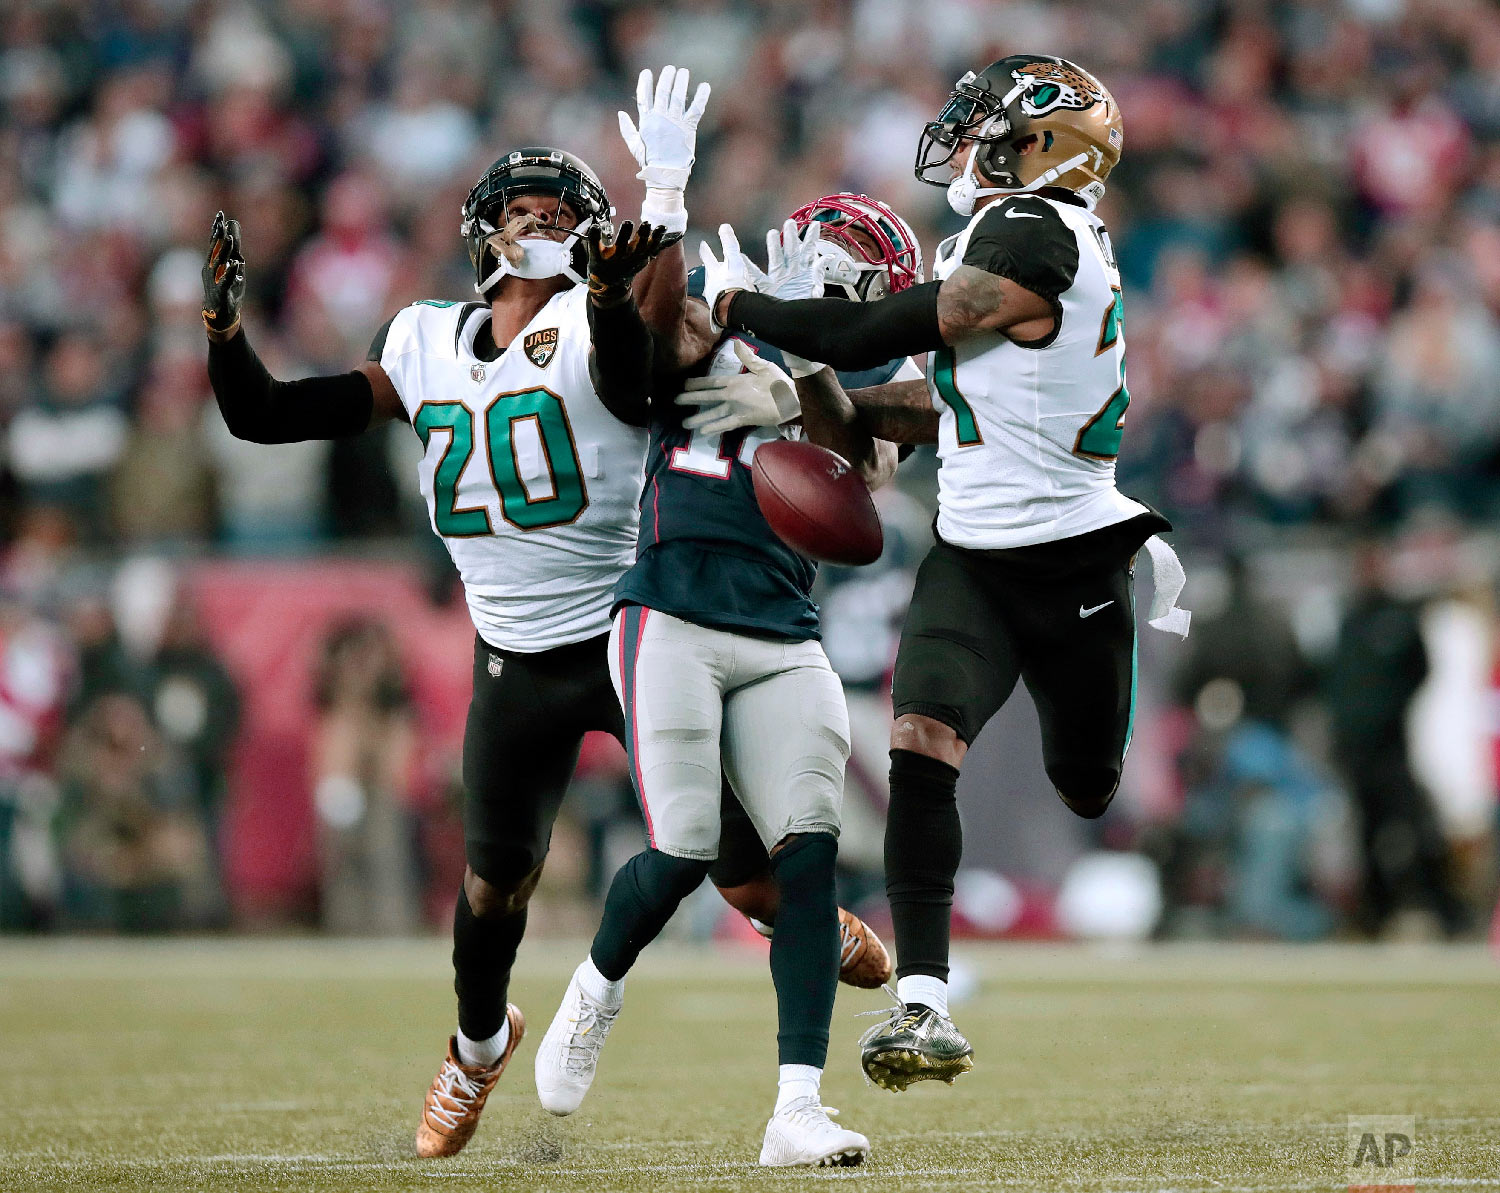 Jacksonville Jaguars cornerbacks Jalen Ramsey (20) and A.J. Bouye (21) break up a pass intended for New England Patriots wide receiver Brandin Cooks during the second half of the AFC championship NFL football game on Jan. 21, 2018, in Foxborough, Mass. (AP Photo/Charles Krupa)